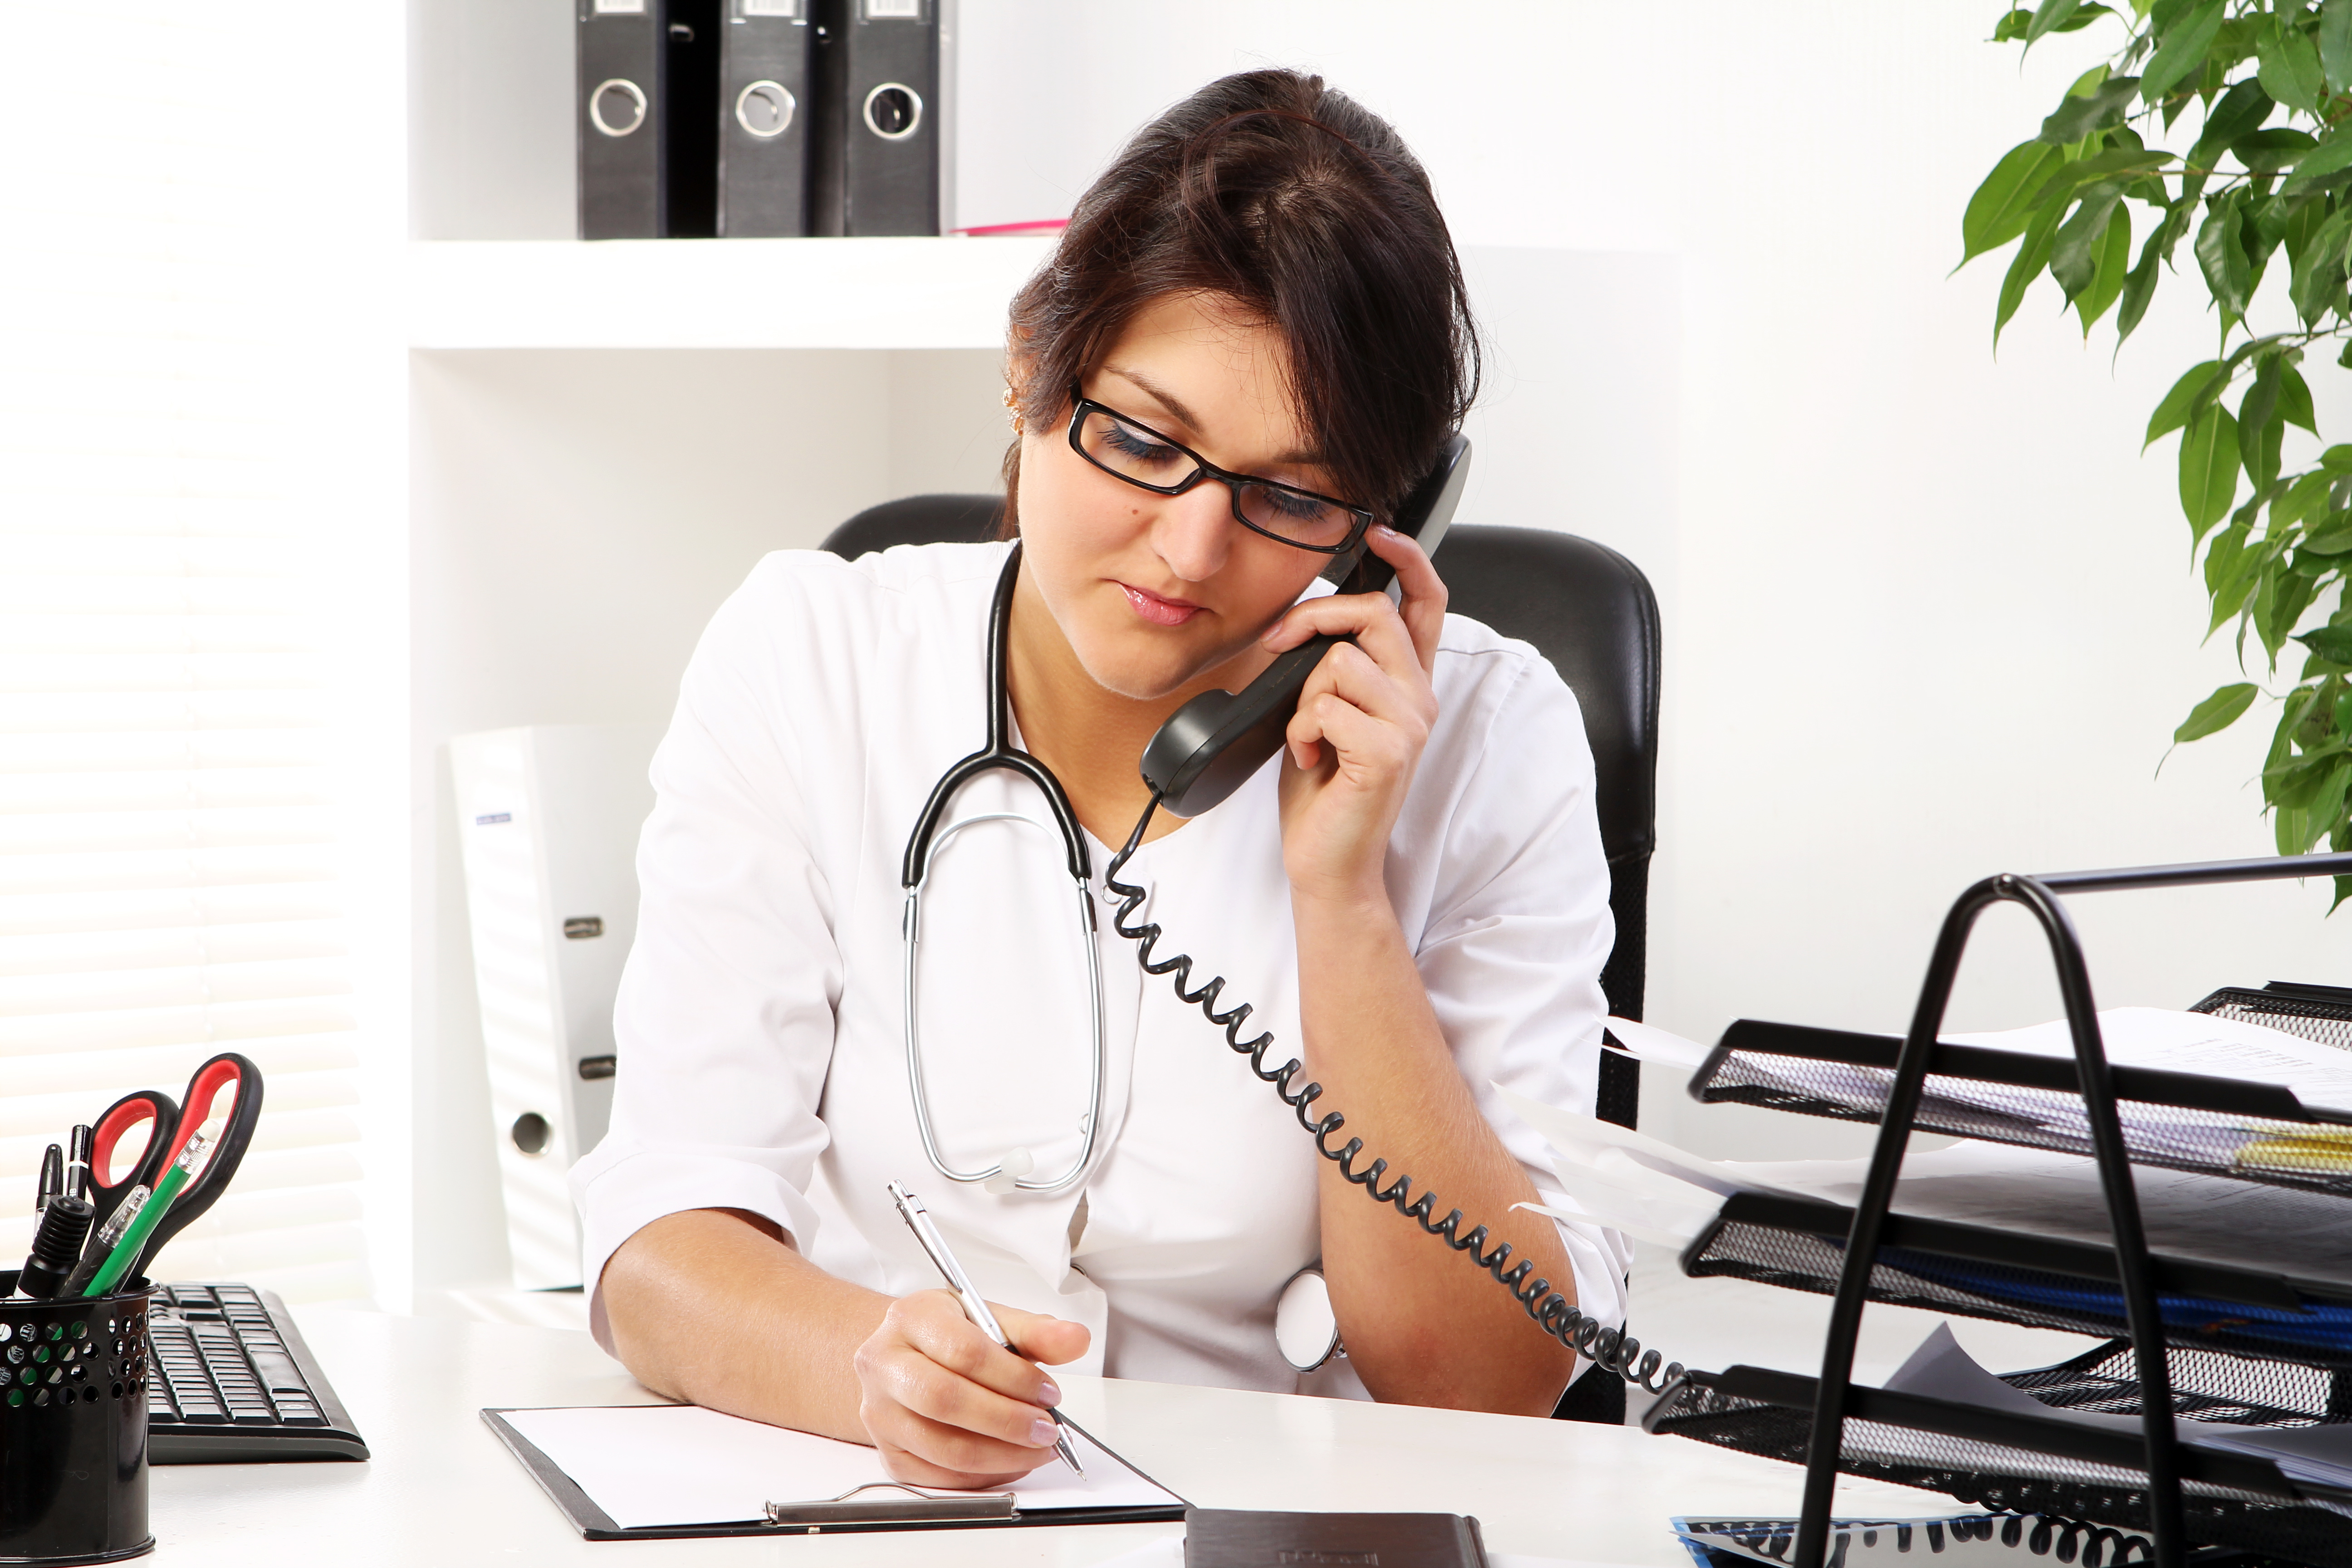 Schedule a phone consultation about prostate cancer treatment |Telephone Consultation